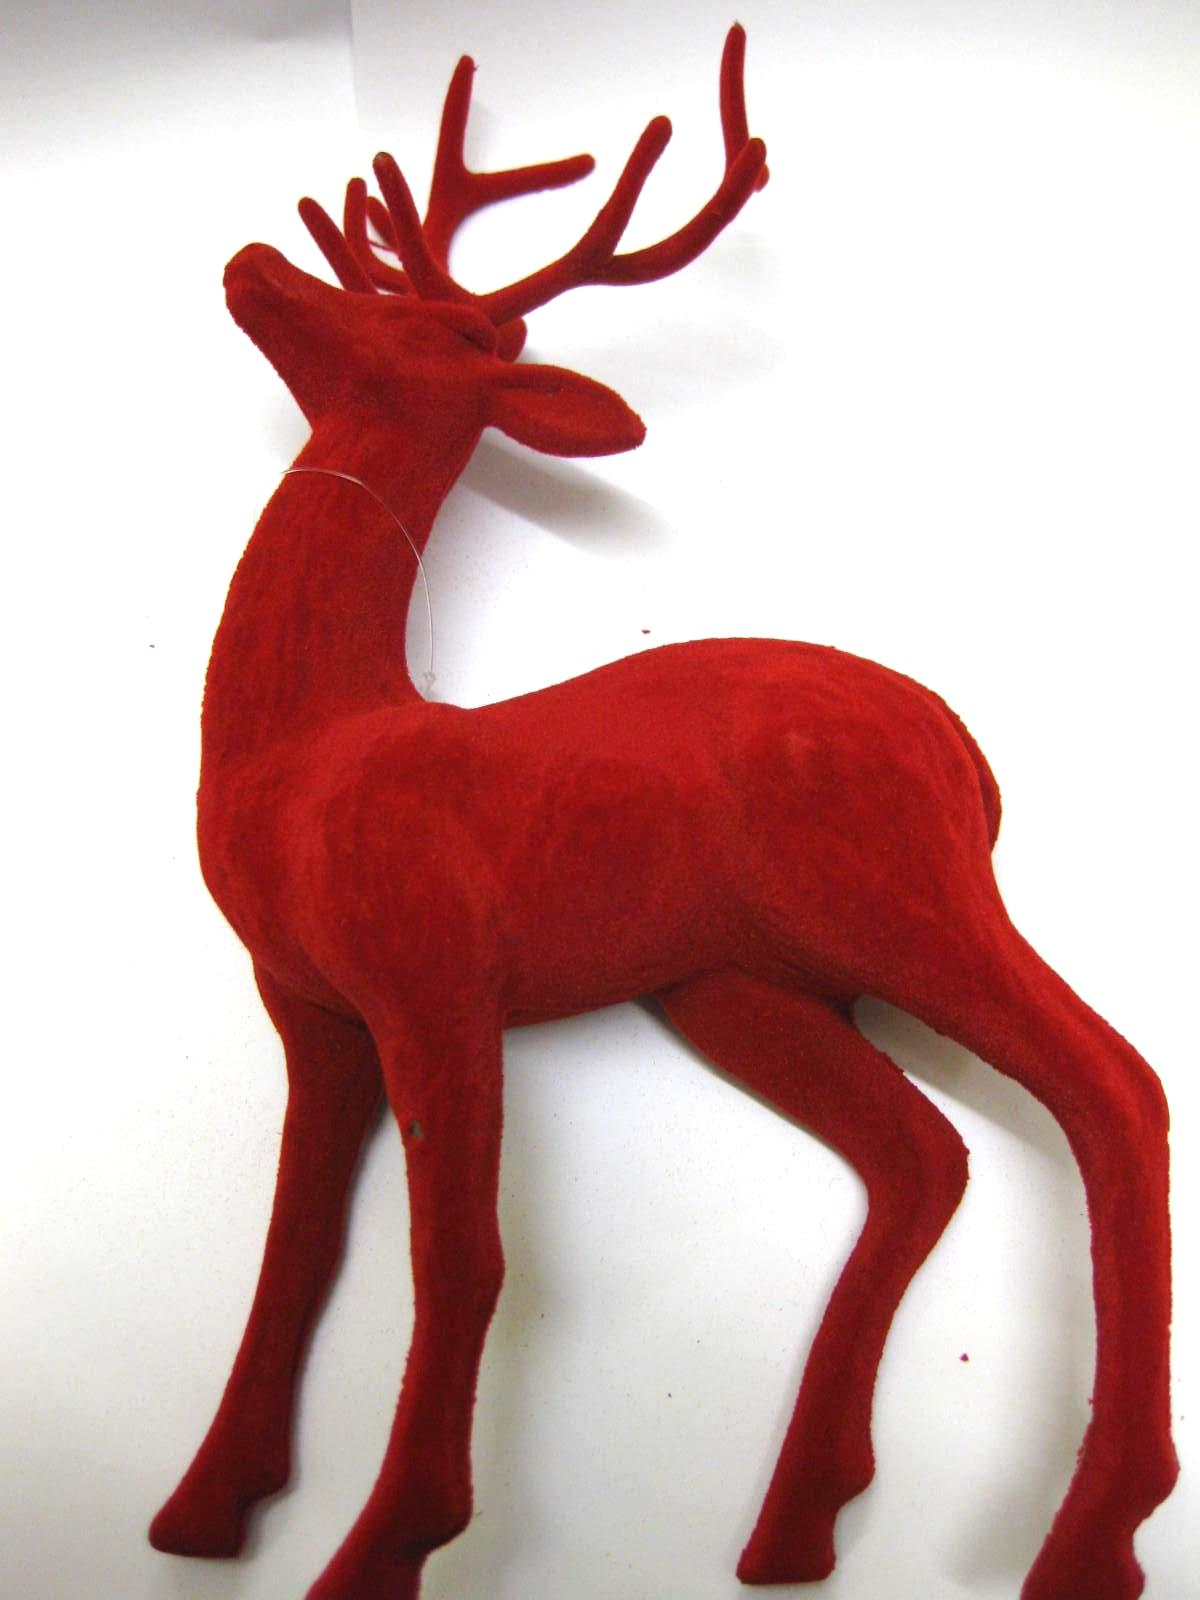 24 x 27cm RED FLOCKED REINDEER ORNAMENT WHOLESALE JOB LOTS CRAFT CHRISTMAS JOB